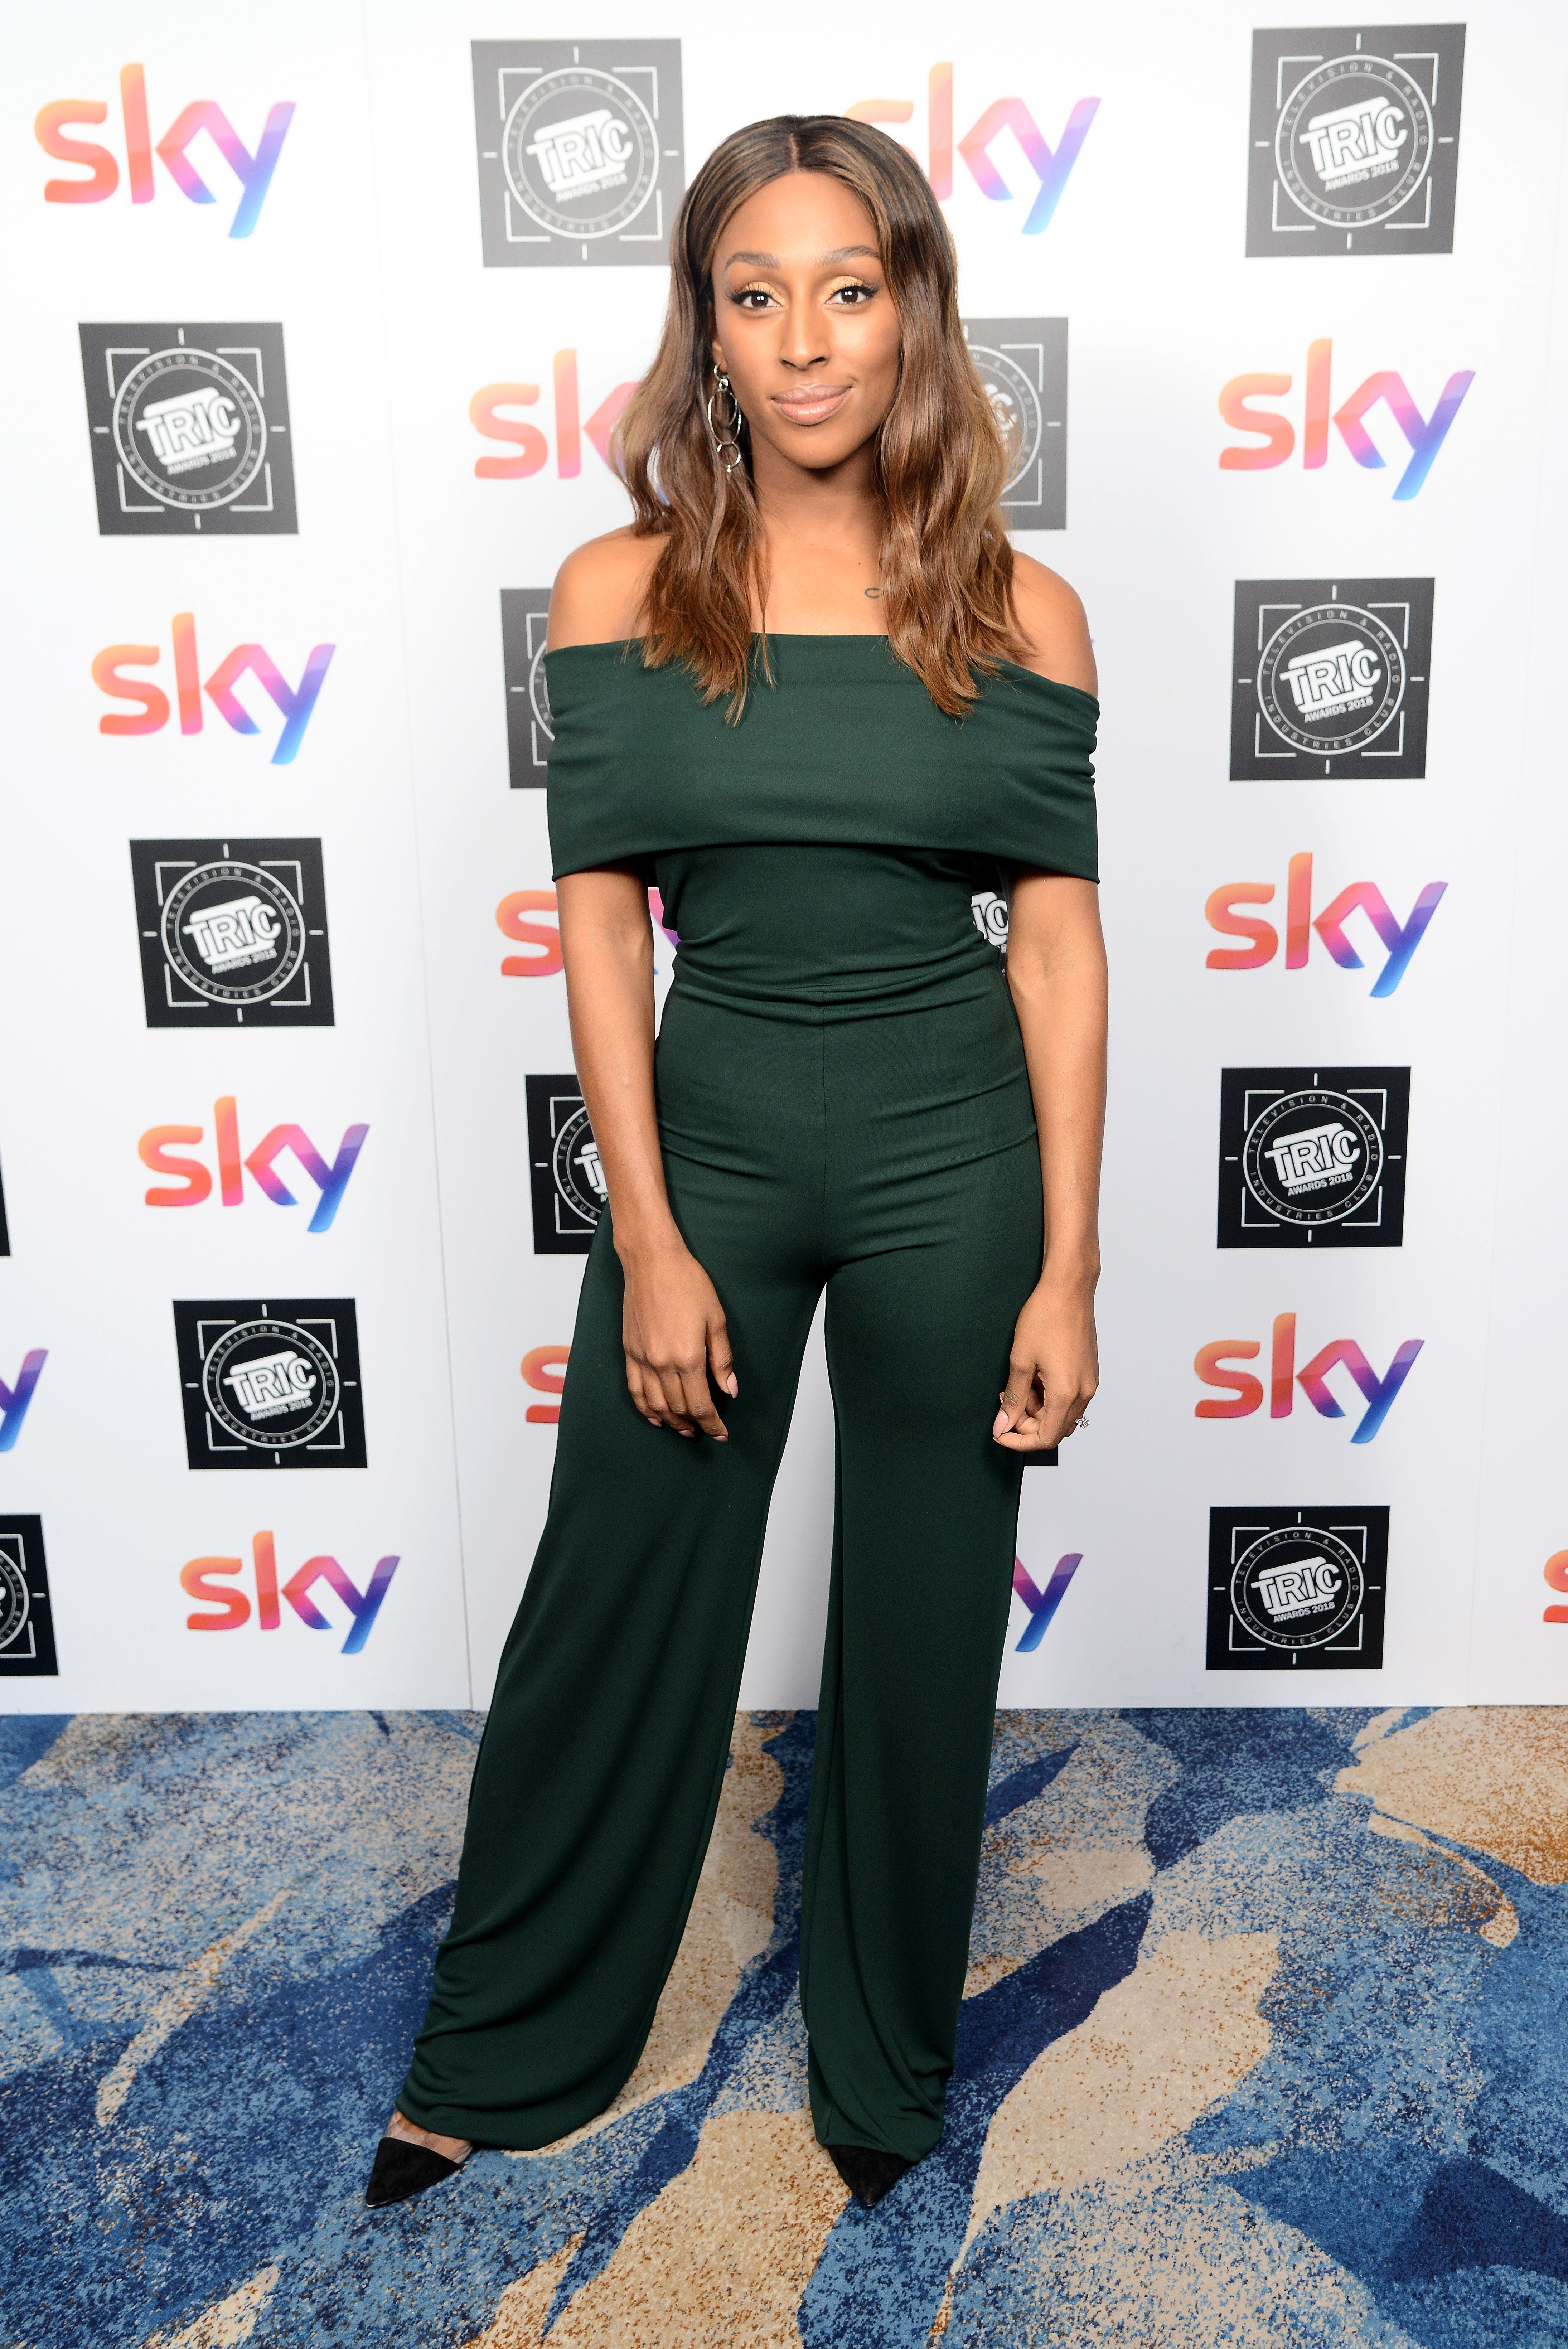 'Strictly' Star Alexandra Burke Says UK Has 'Massive Problem' With 'Confident Women'